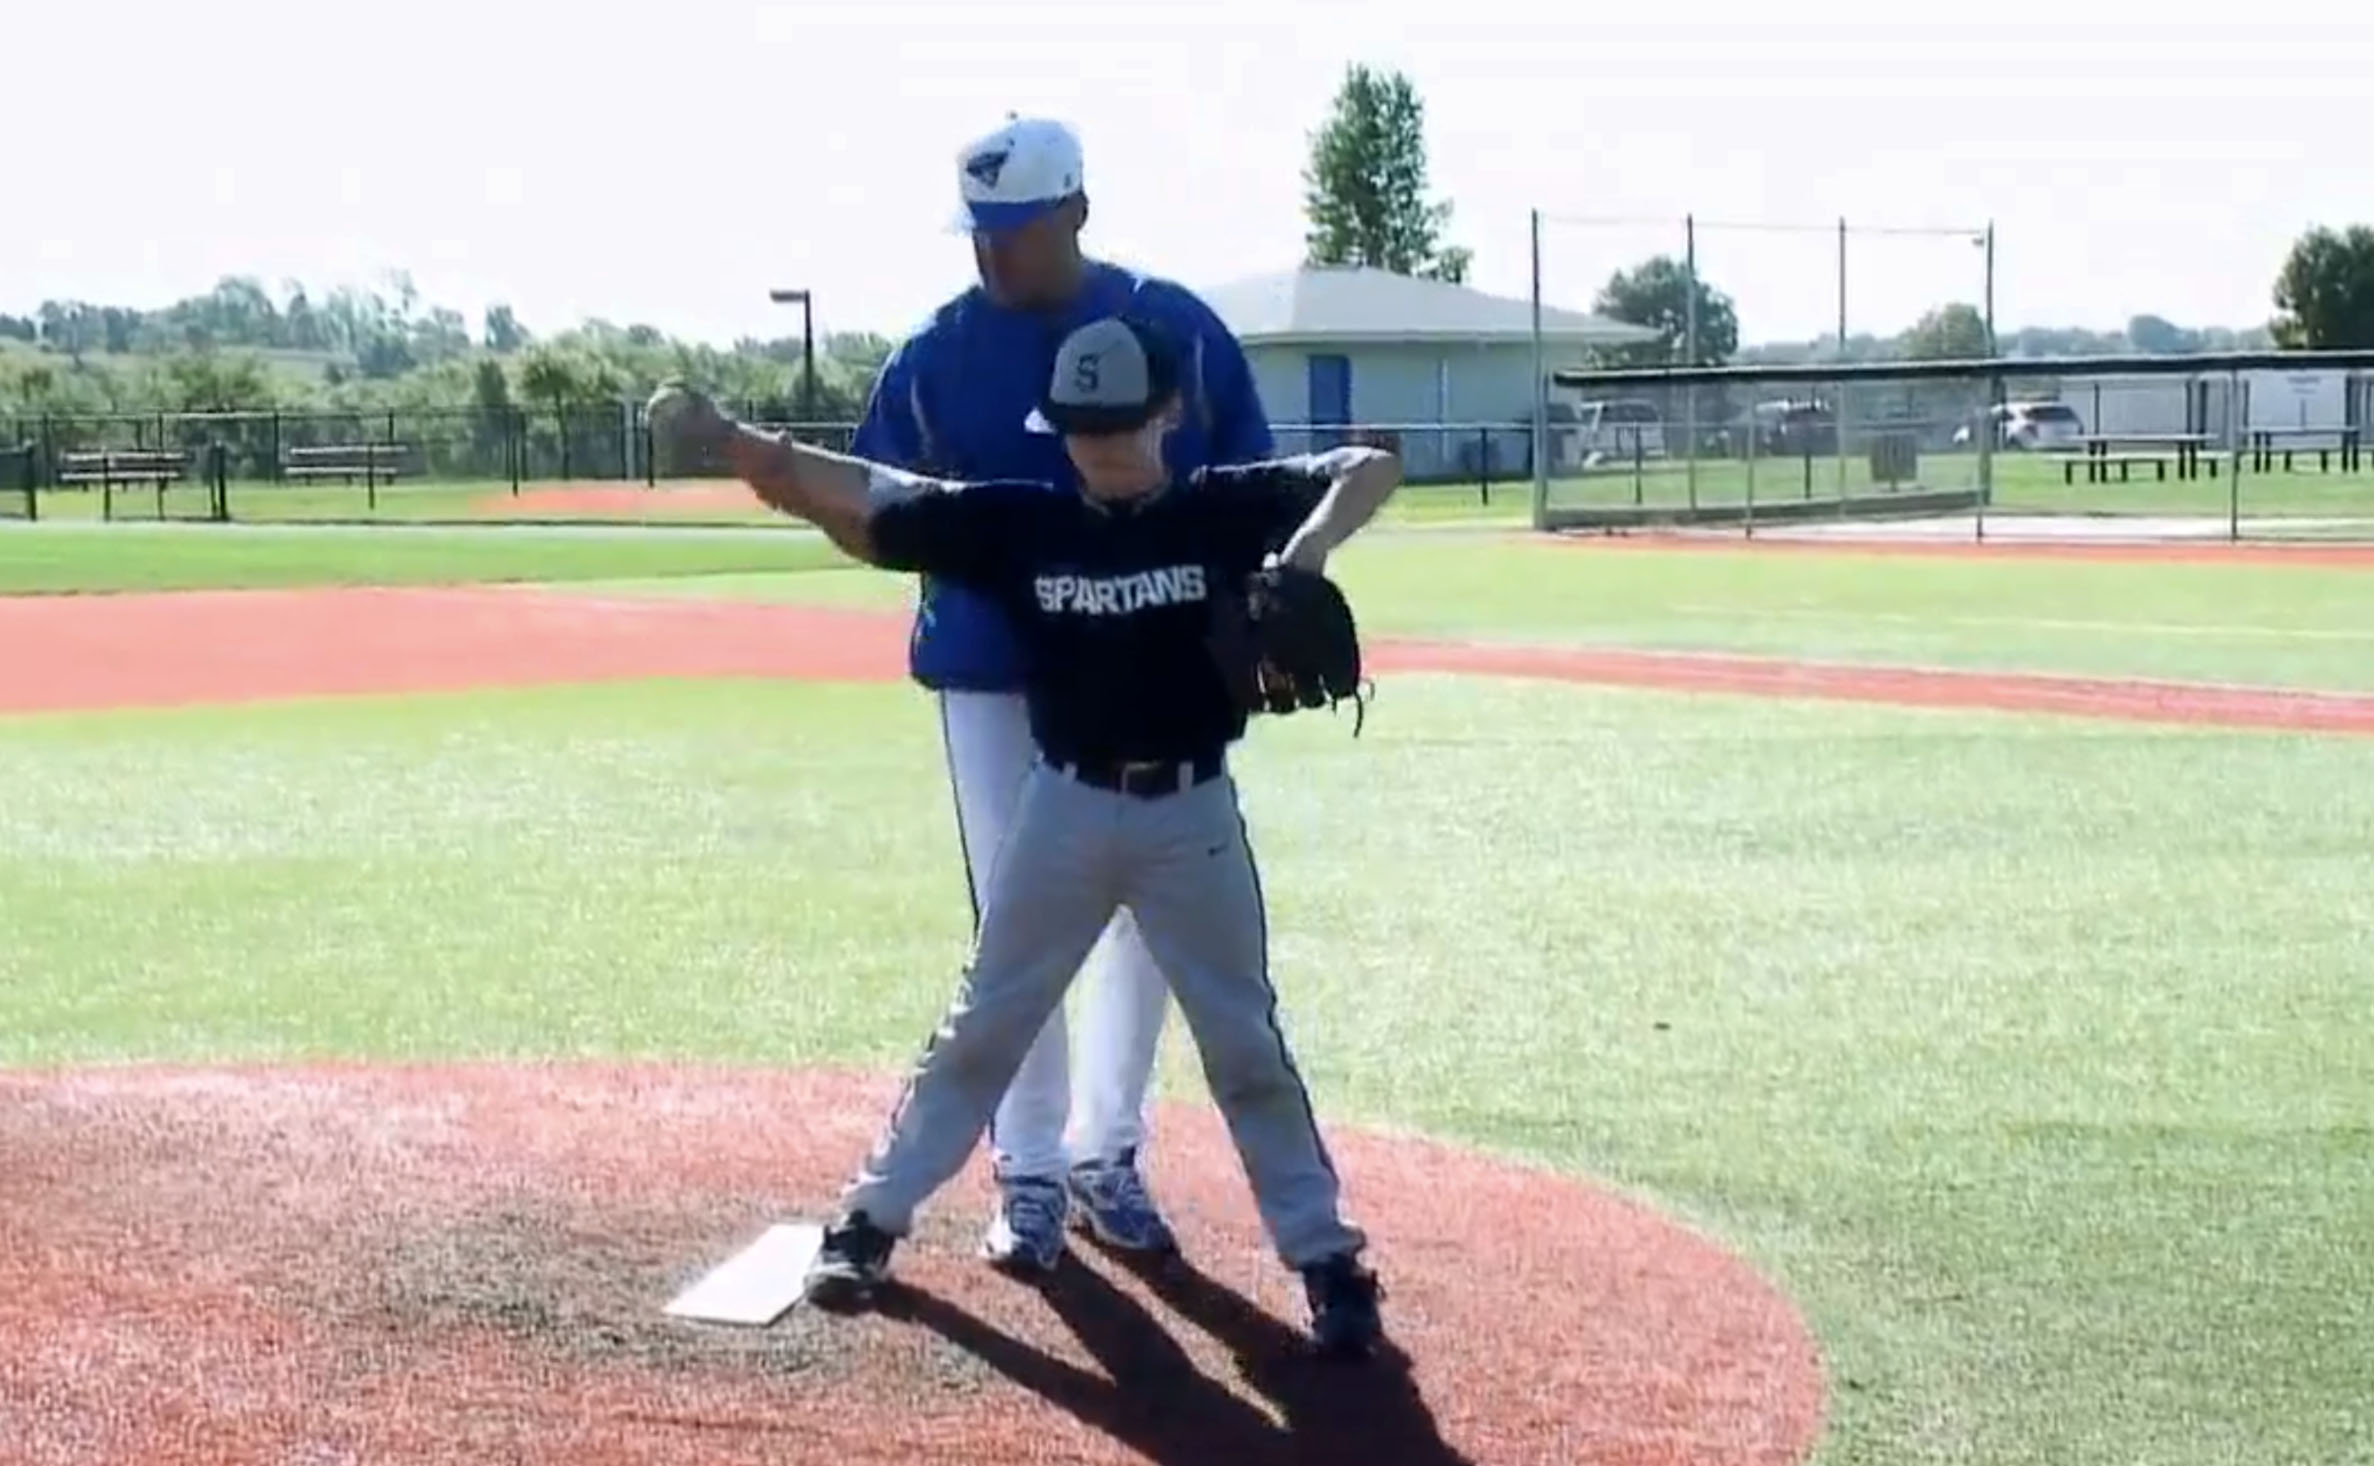 Coach positioning elbow for pitching